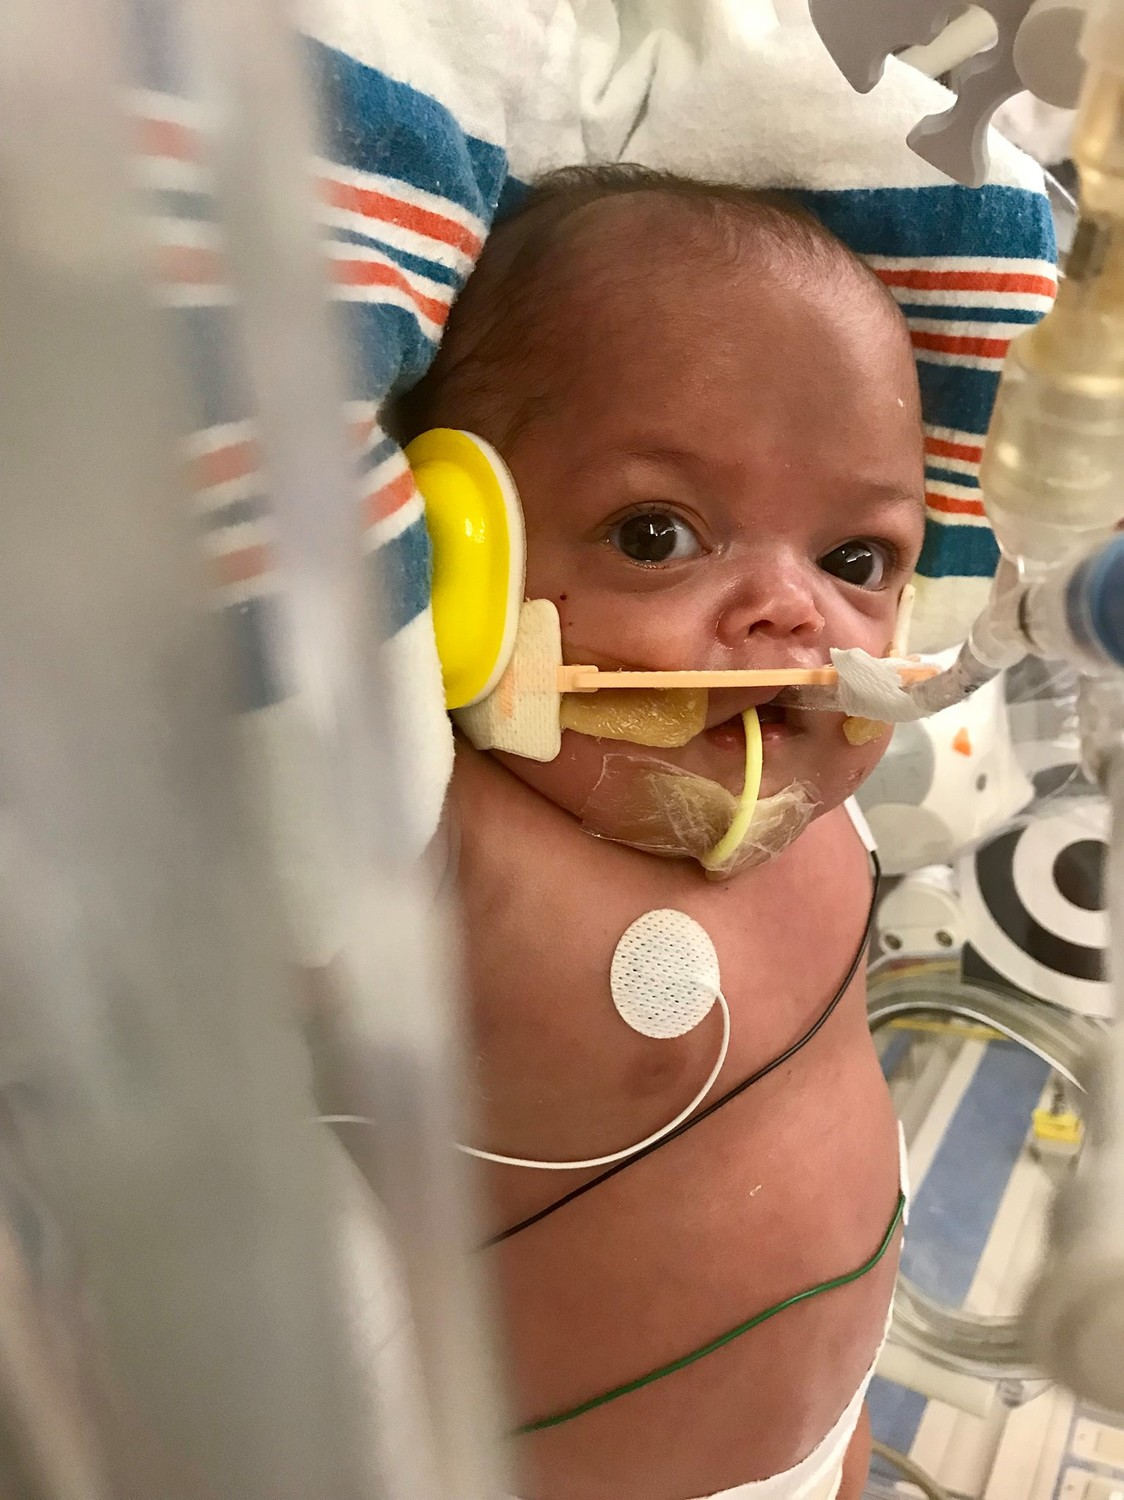 Eight-month-old Dominic Brucculeri was at NYU Winthrop Hospital before his transfer to Children's Hospital of Philadelphia.